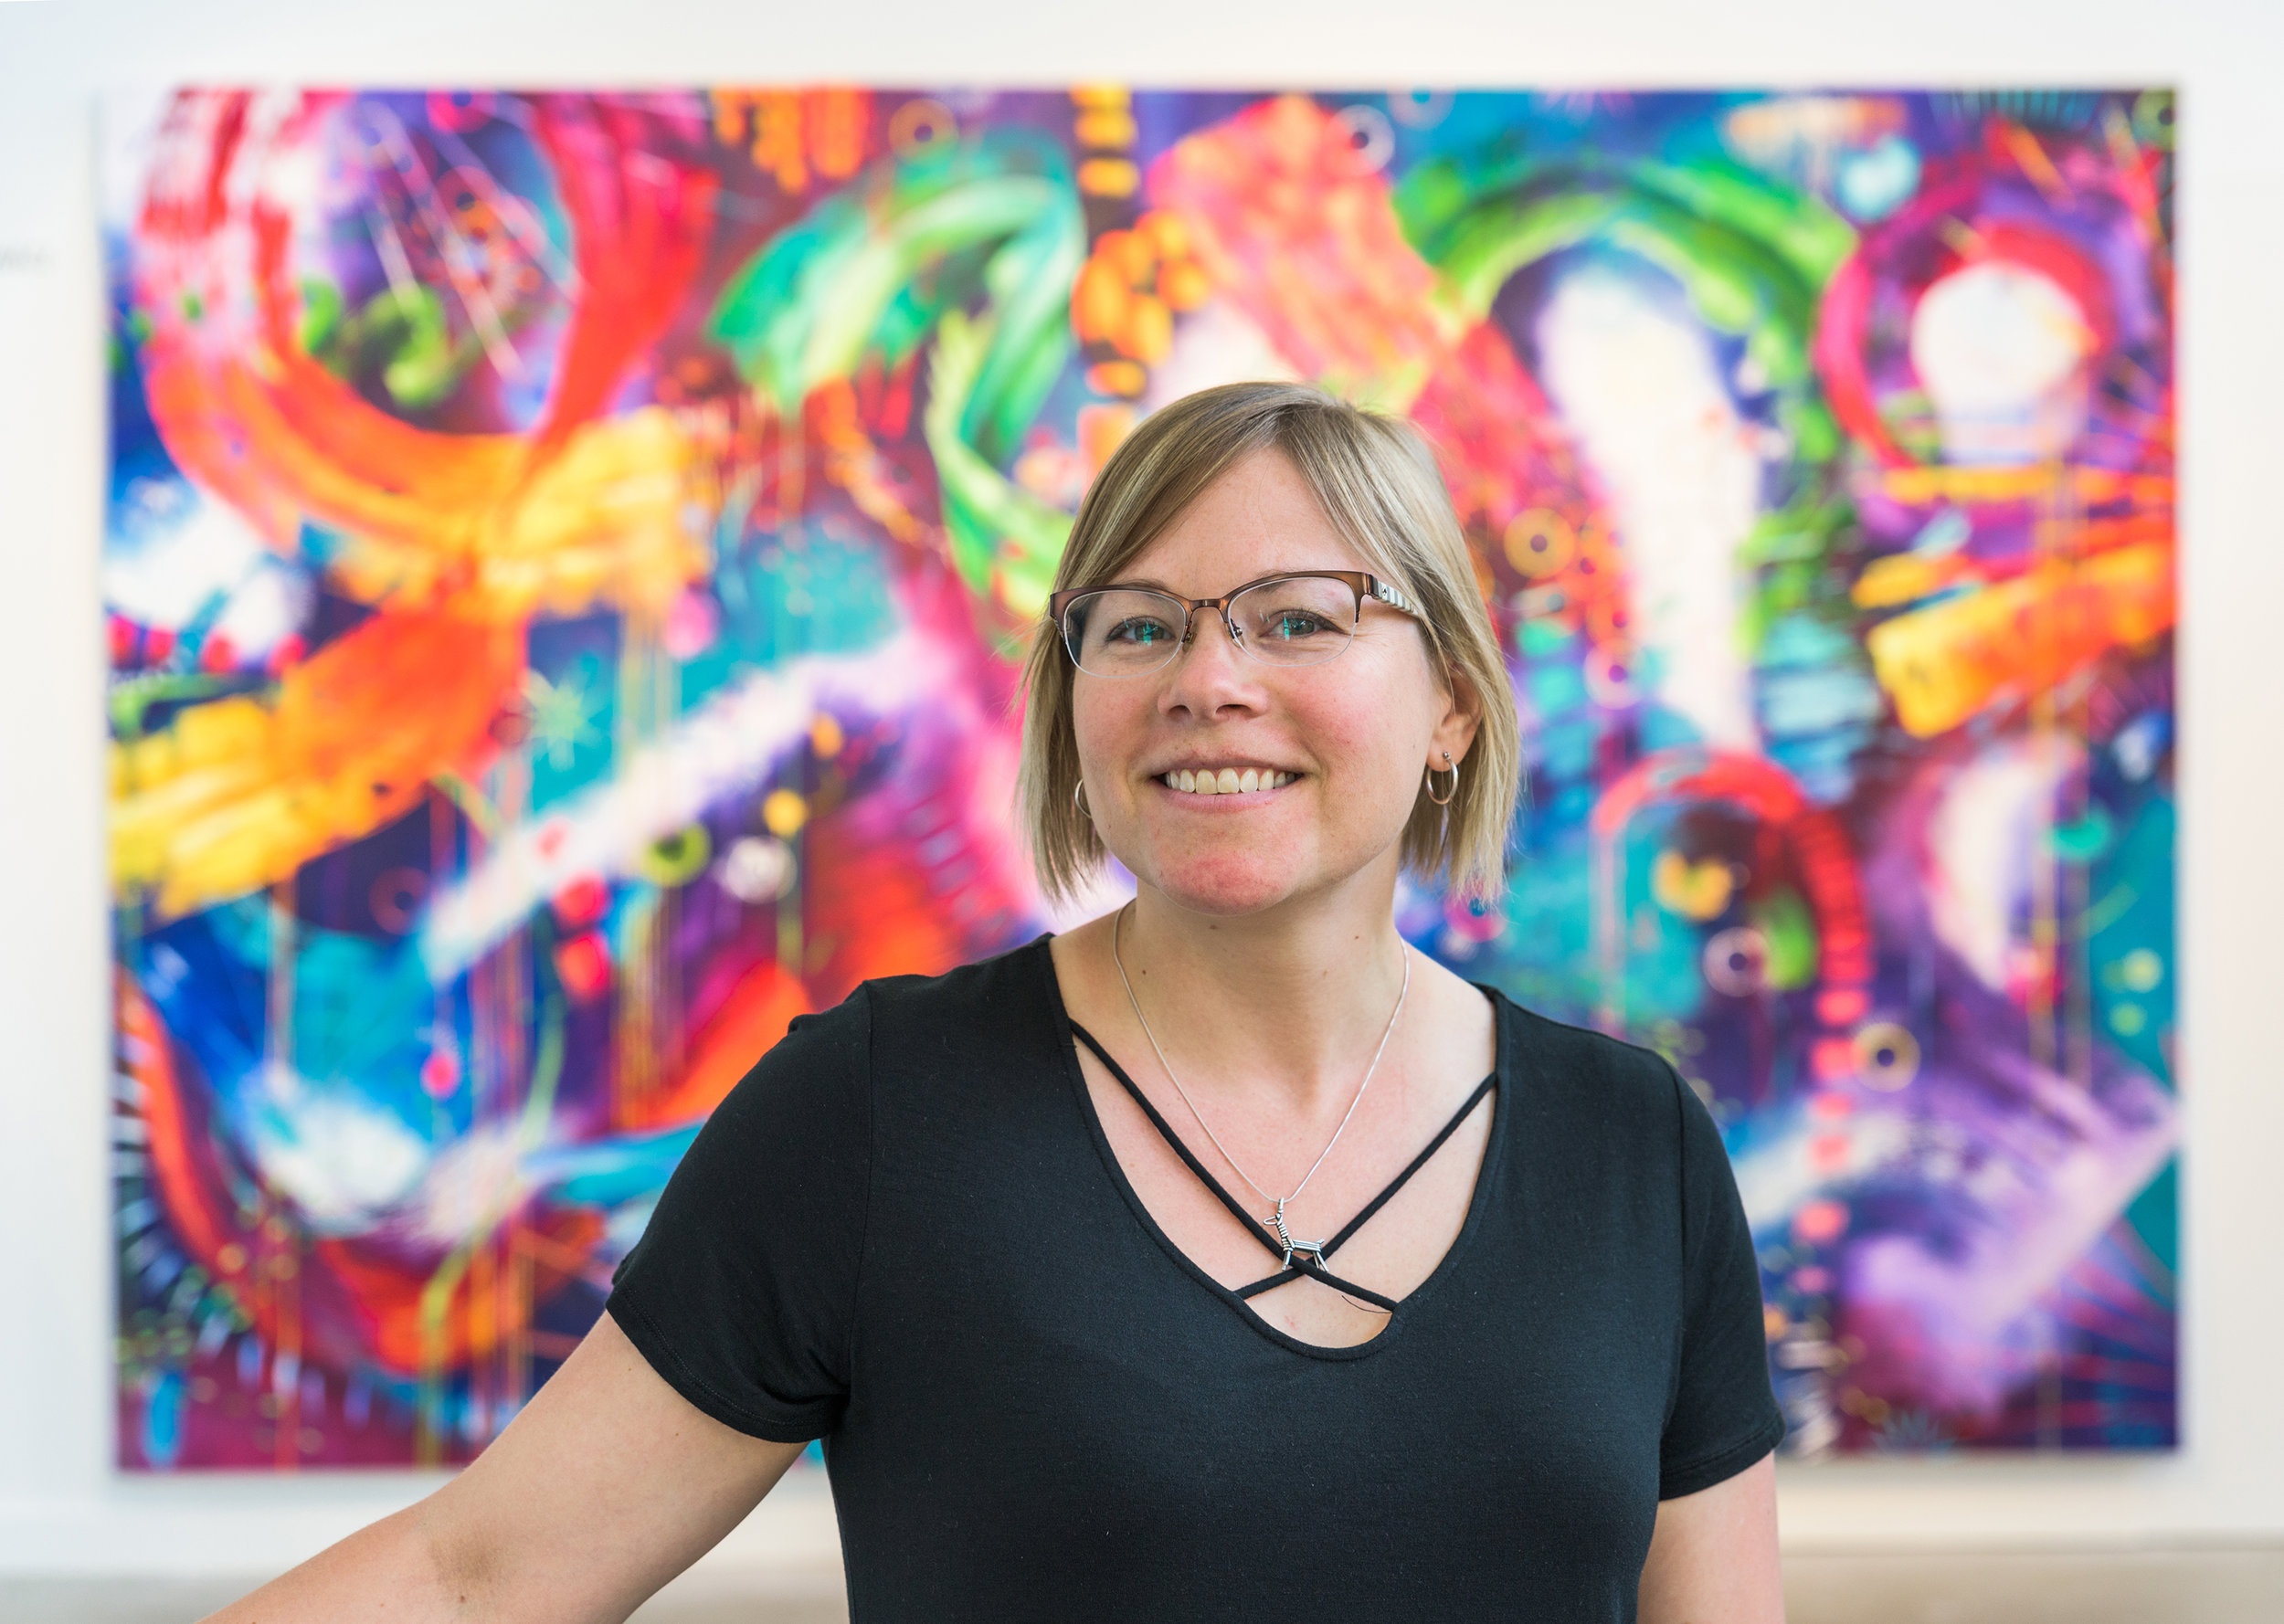 About Sherry - Born in 1980 and raised in Ellicott City, Maryland, Sherry Jankiewicz studied Art Education at the University of Maryland, College Park, and began teaching middle school art in the Howard County Public School System in Maryland. She qualified for a Fulbright Scholarship Program with UMBC in 2010, traveling abroad to Mexico to study art history. In 2013, Sherry and a friend created a project in Blantyre, Malawi to paint a mural in a city park with orphaned children residing with the Samaritan Trust Program. Inspired through travel and the desire for adventure, Sherry left teaching in 2016 to pursue her Masters in Fine Arts specializing in Print Media in Portland, Oregon, graduating in 2018 and currently resides and works in Portland. When not in the studio, Sherry can be found rock-climbing, hiking, biking around the city, and reading while sipping on Oregon's amazing wines.